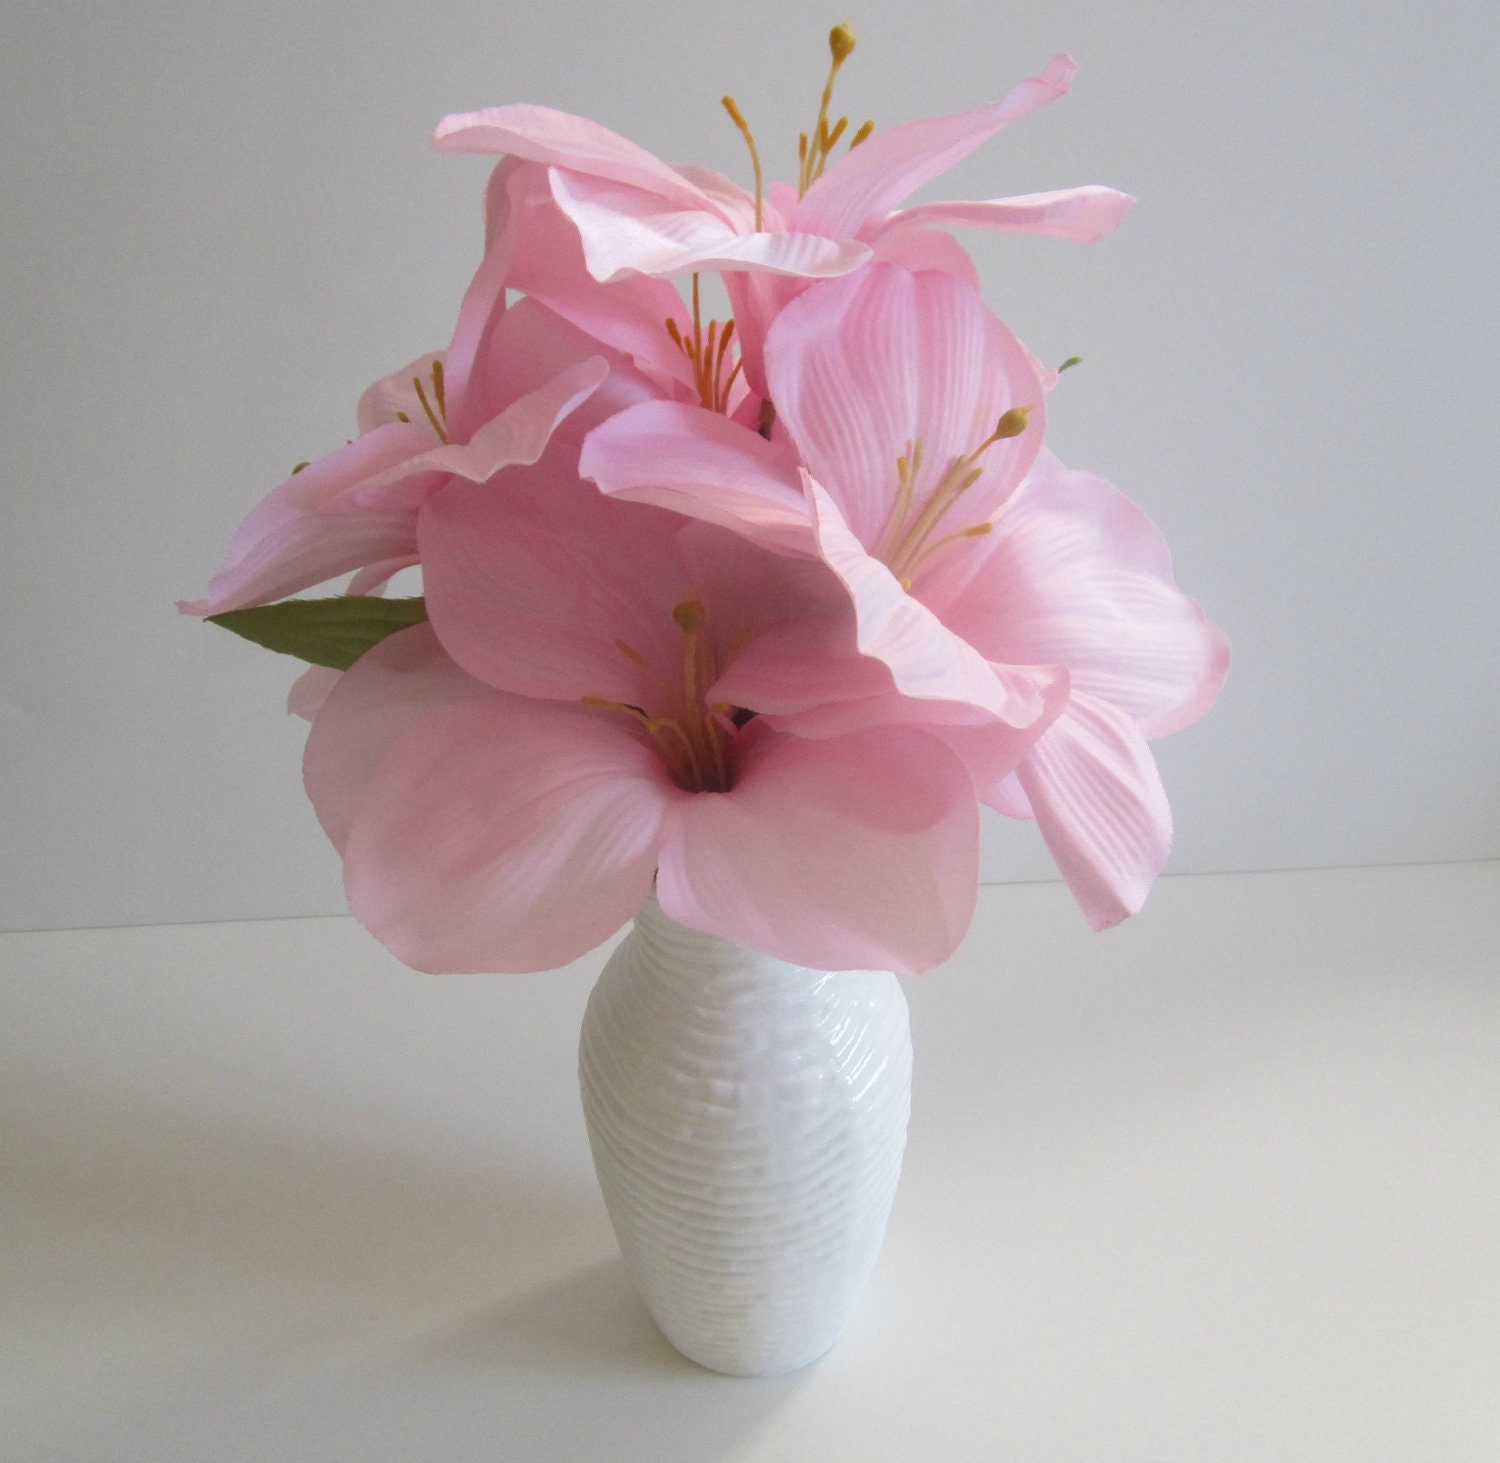 Silk Floral Arrangement Pink Amaryllis In Painted White Vase - IllusionCreations